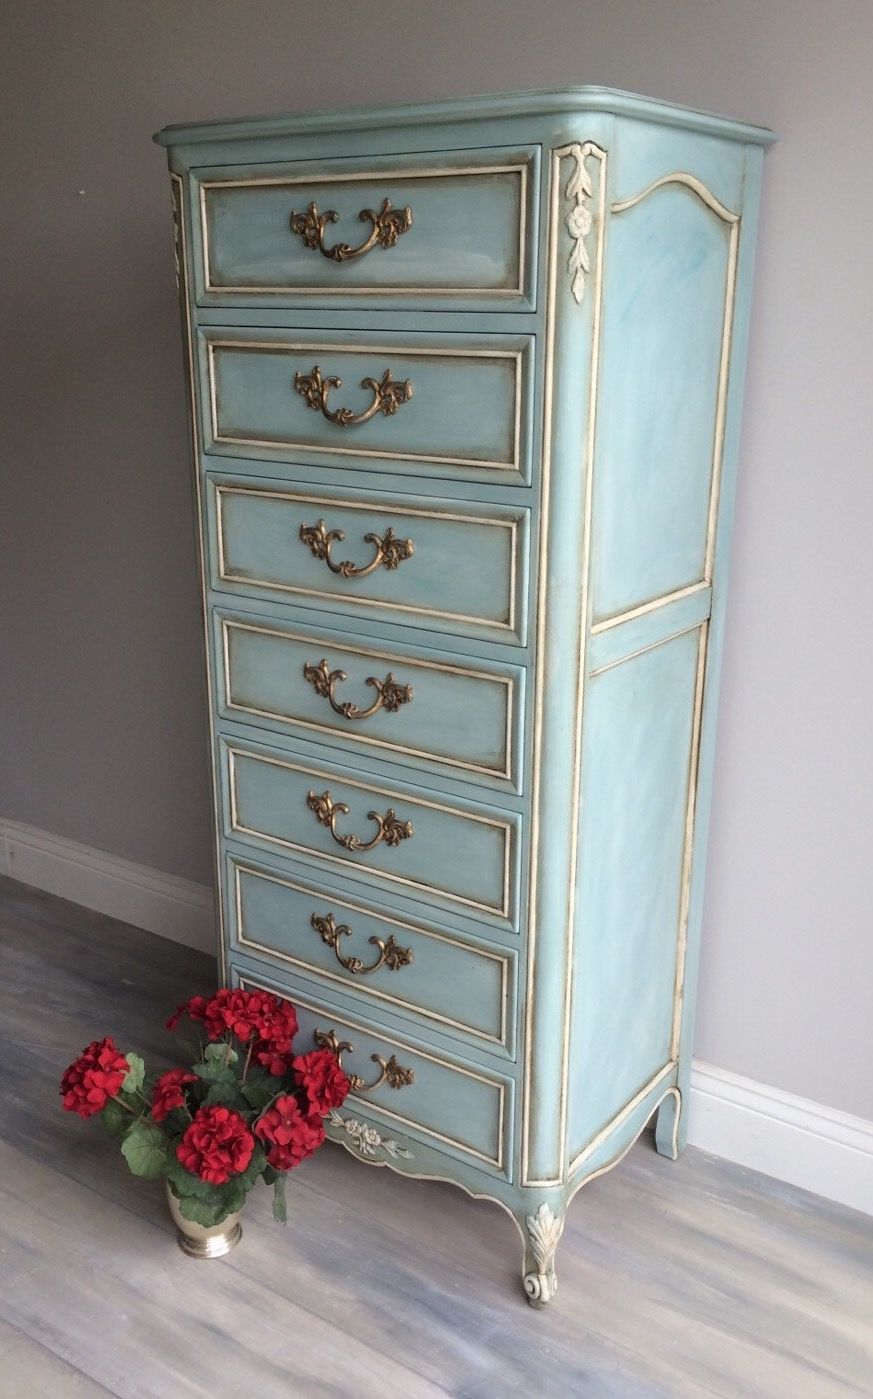 ❤️ French lingerie chest painted a brilliant blue with Annie Sloan Chalk Paint. This beauty is layered in paint; it took about 4 different paint shades to achieve this look. Each drawer is finished with sparkling hardware. 57 tall x 23 wide x 16 deep. ~ $895 by RelovedHomeDesigns (Etsy)